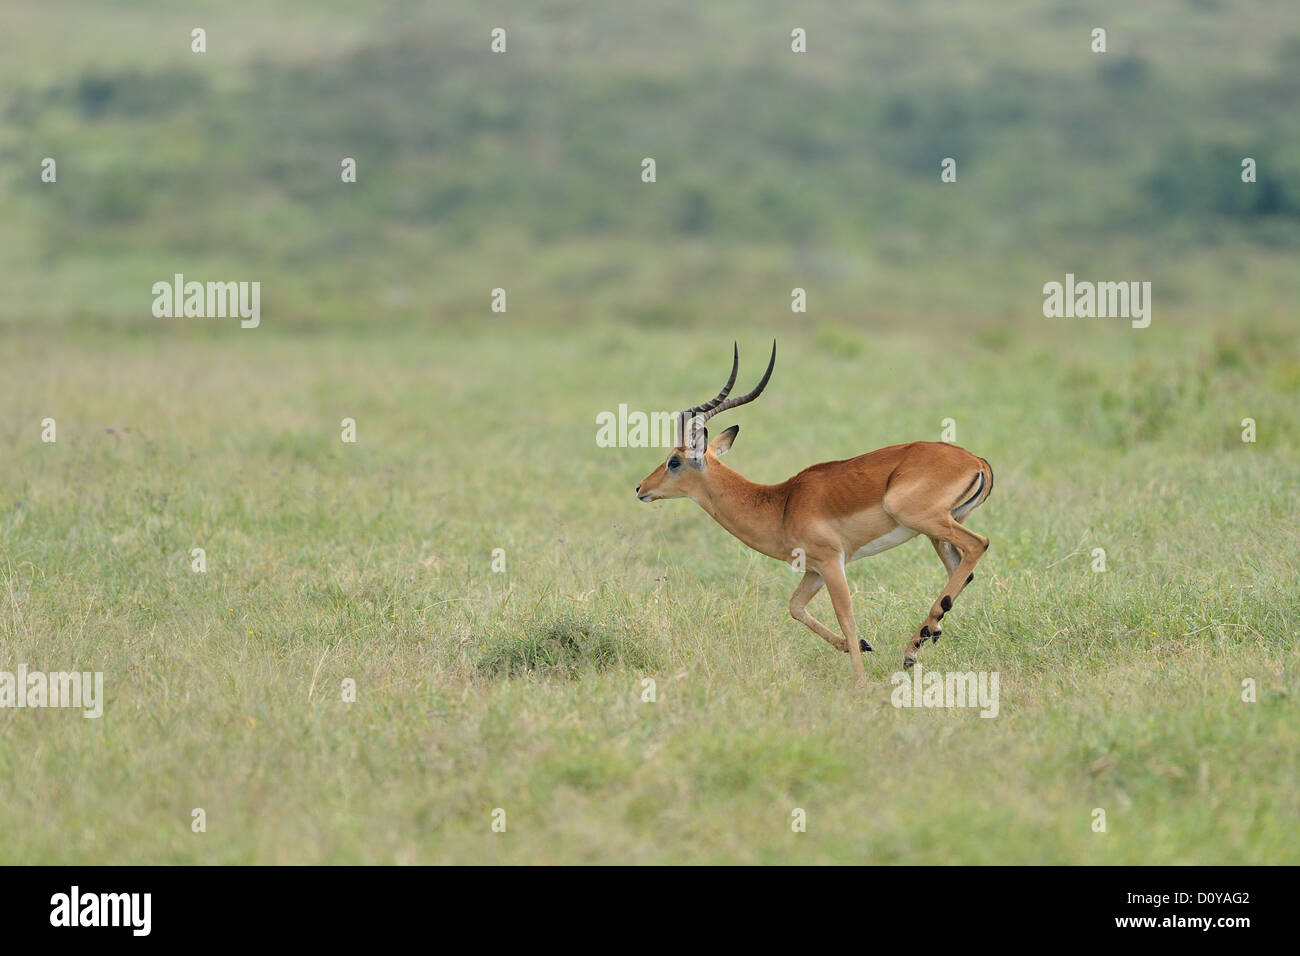 Impala (Aepyceros melampus melampus) male running Maasai Mara NP - Kenya - East Africa Stock Photo